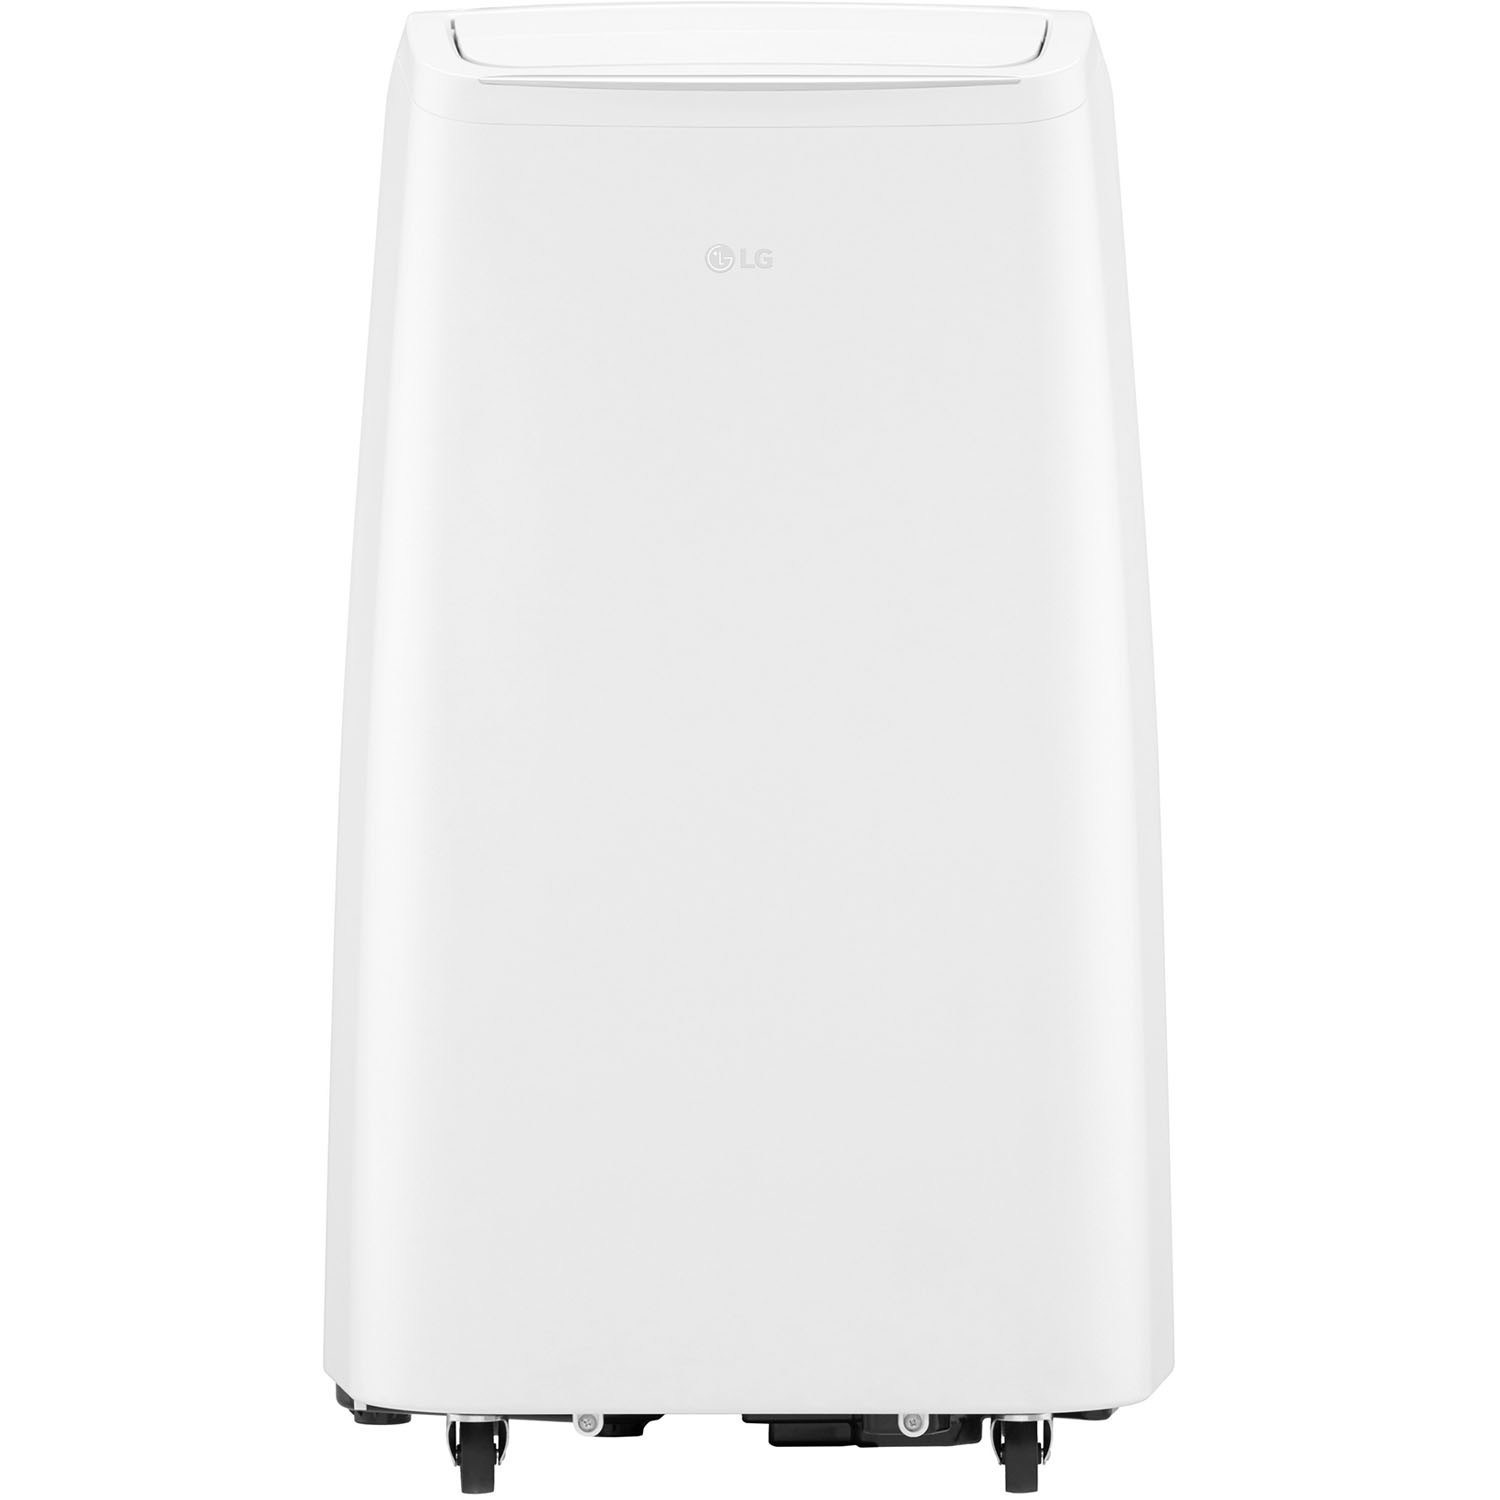 LG 10,000 BTU 115-Volt Portable Air Conditioner with Remote, Factory Reconditioned